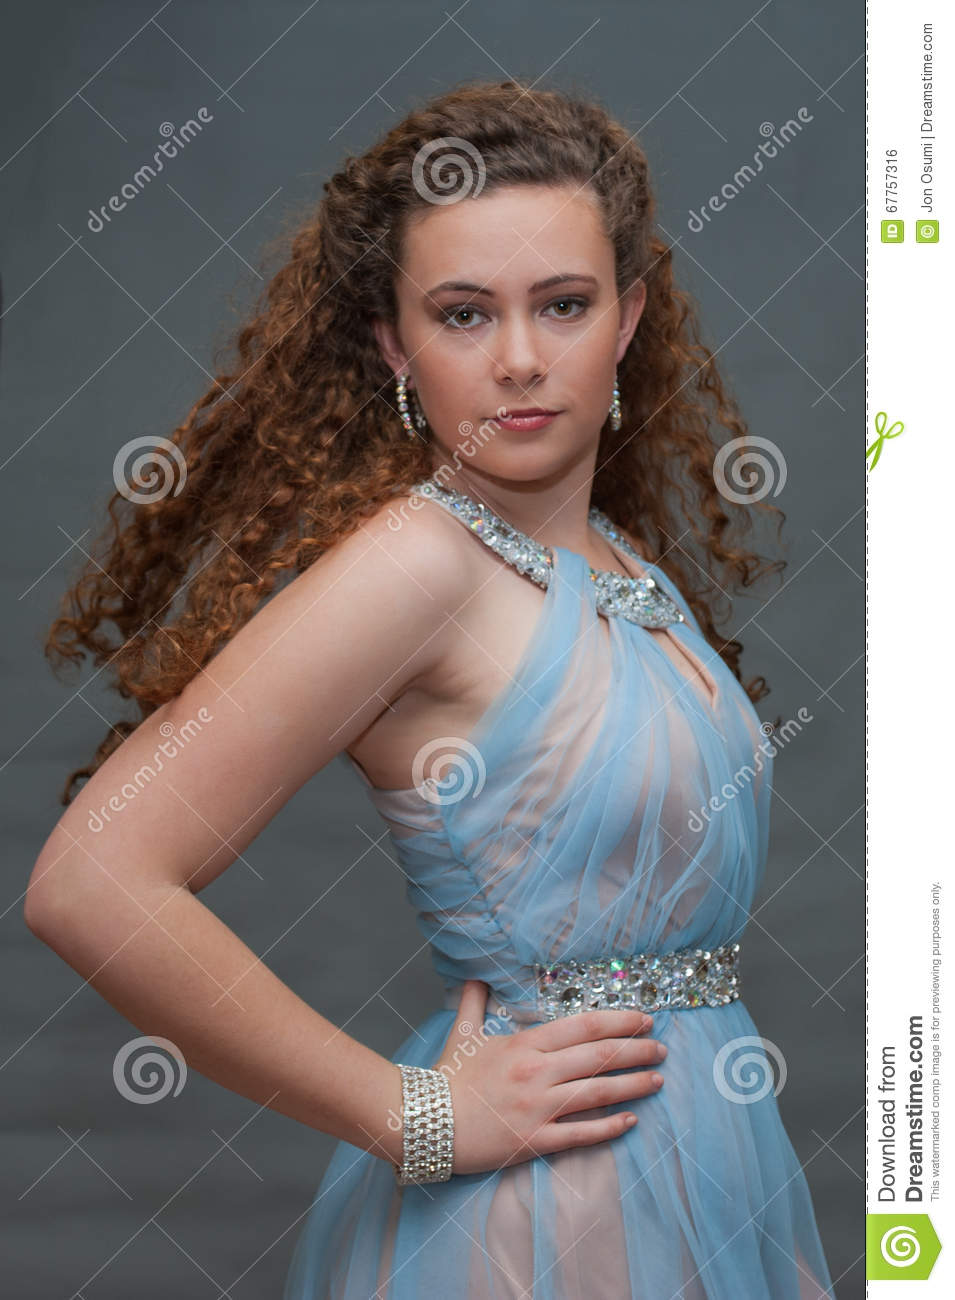 showing attitude in blue sheer dress stock photo image of pageant